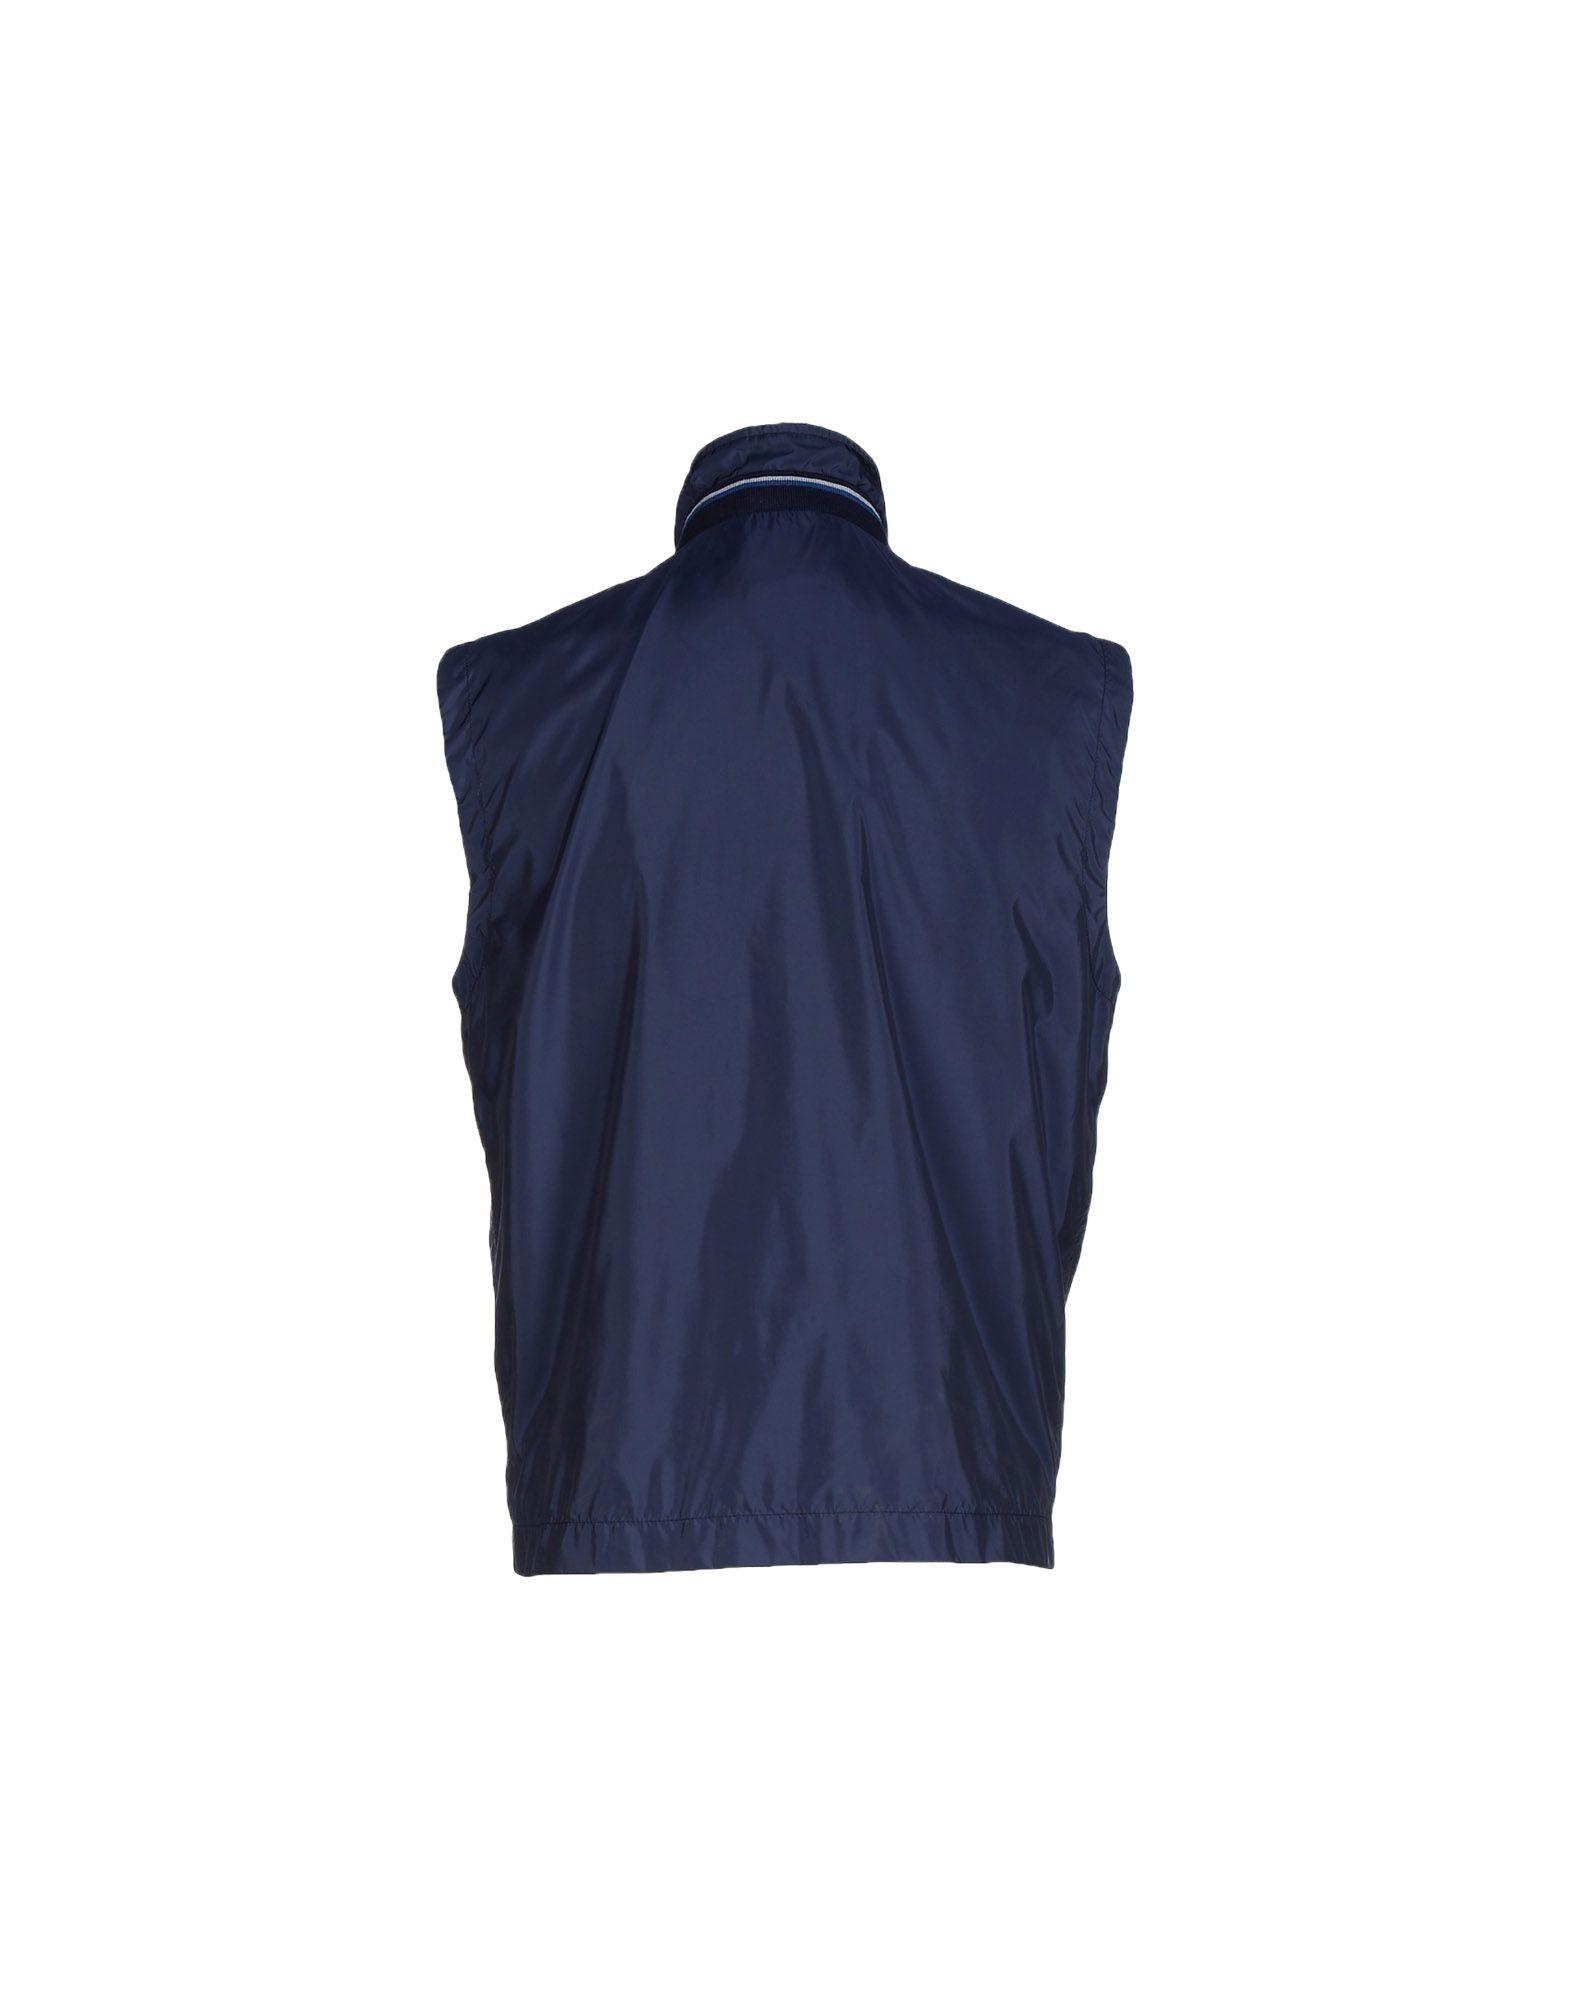 Fay Synthetic Jacket in Dark Blue (Blue) for Men